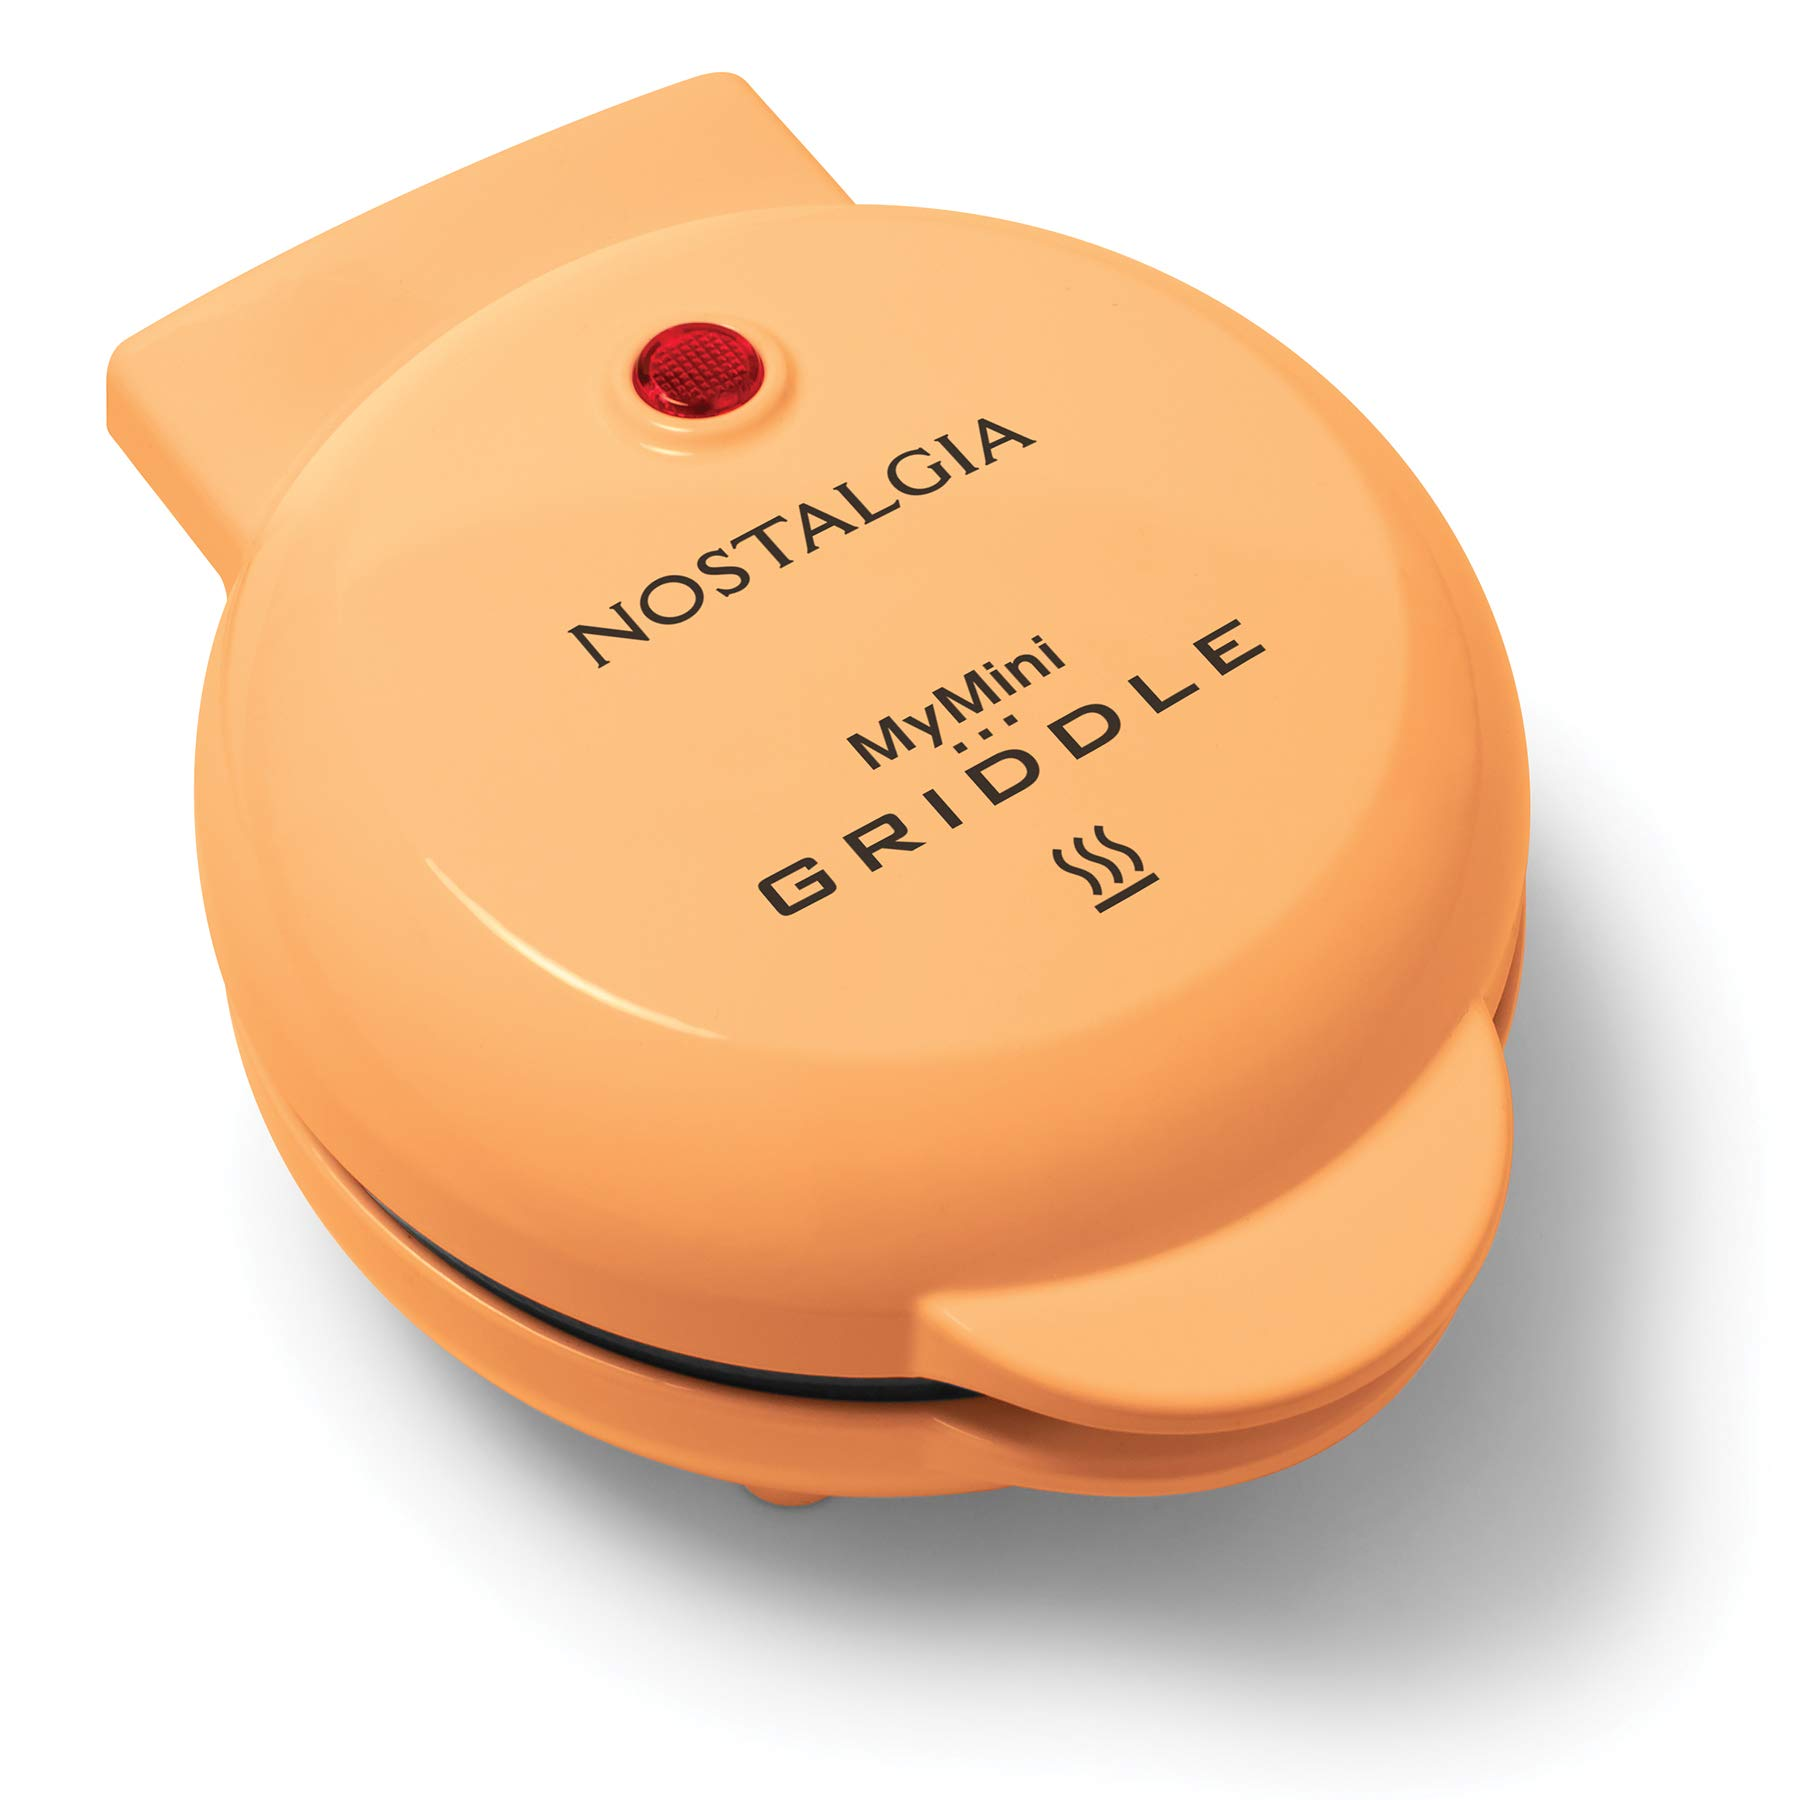 Nostalgia MGD5OR MyMini Personal Electric Griddle, Eggs, Omelets, Pancakes Breakfast Sandwiches, Quesadillas, Cookies, Orange by Nostalgia